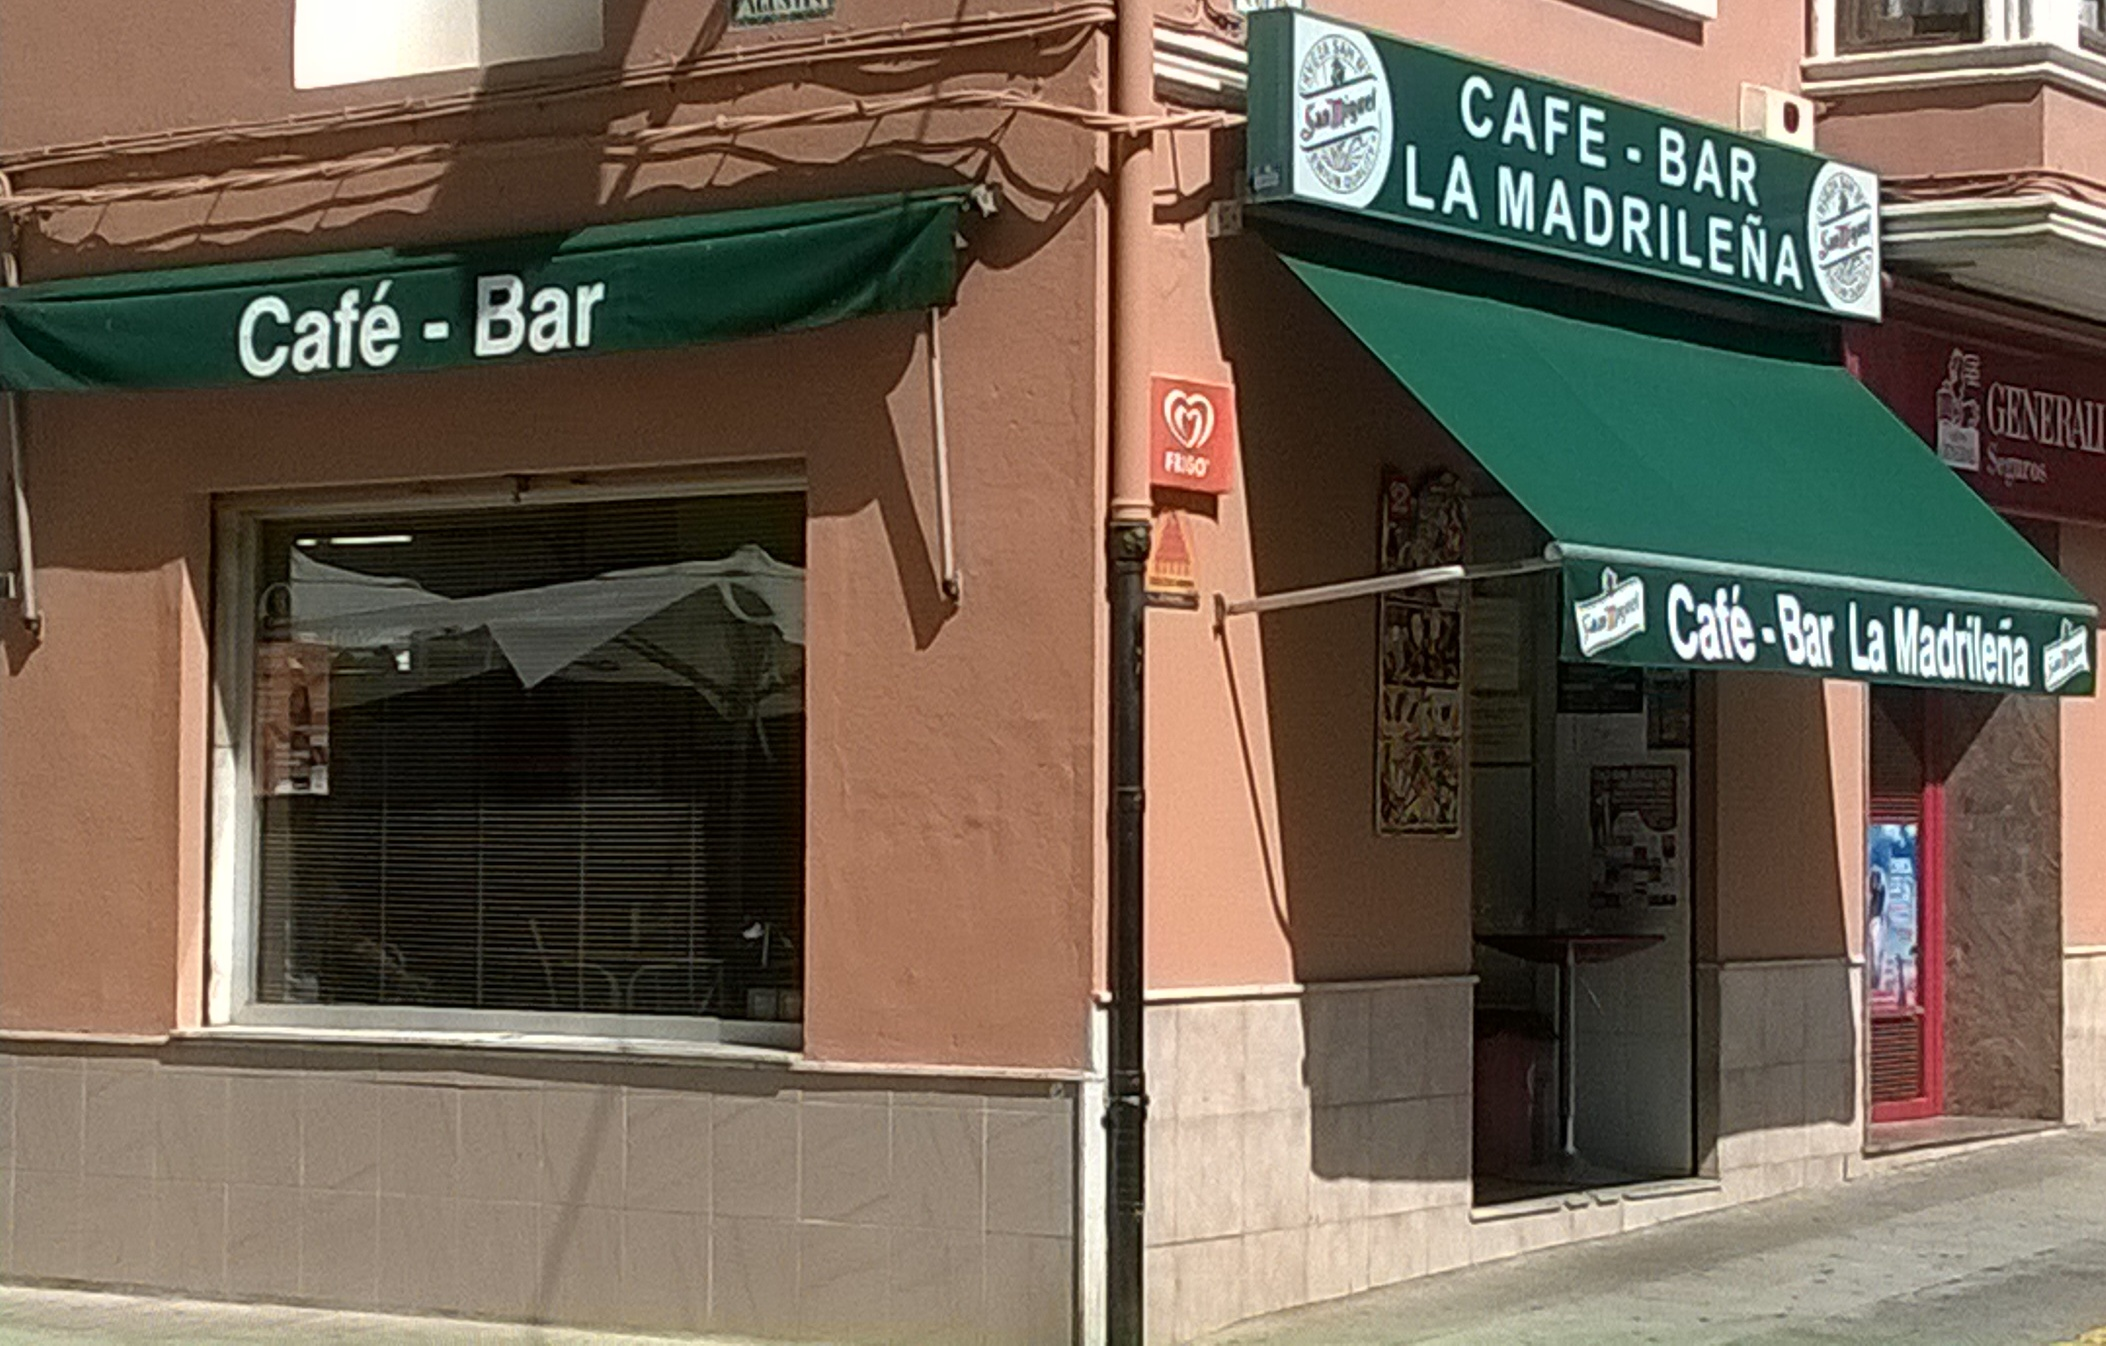 Cafe Bar La Madrileña